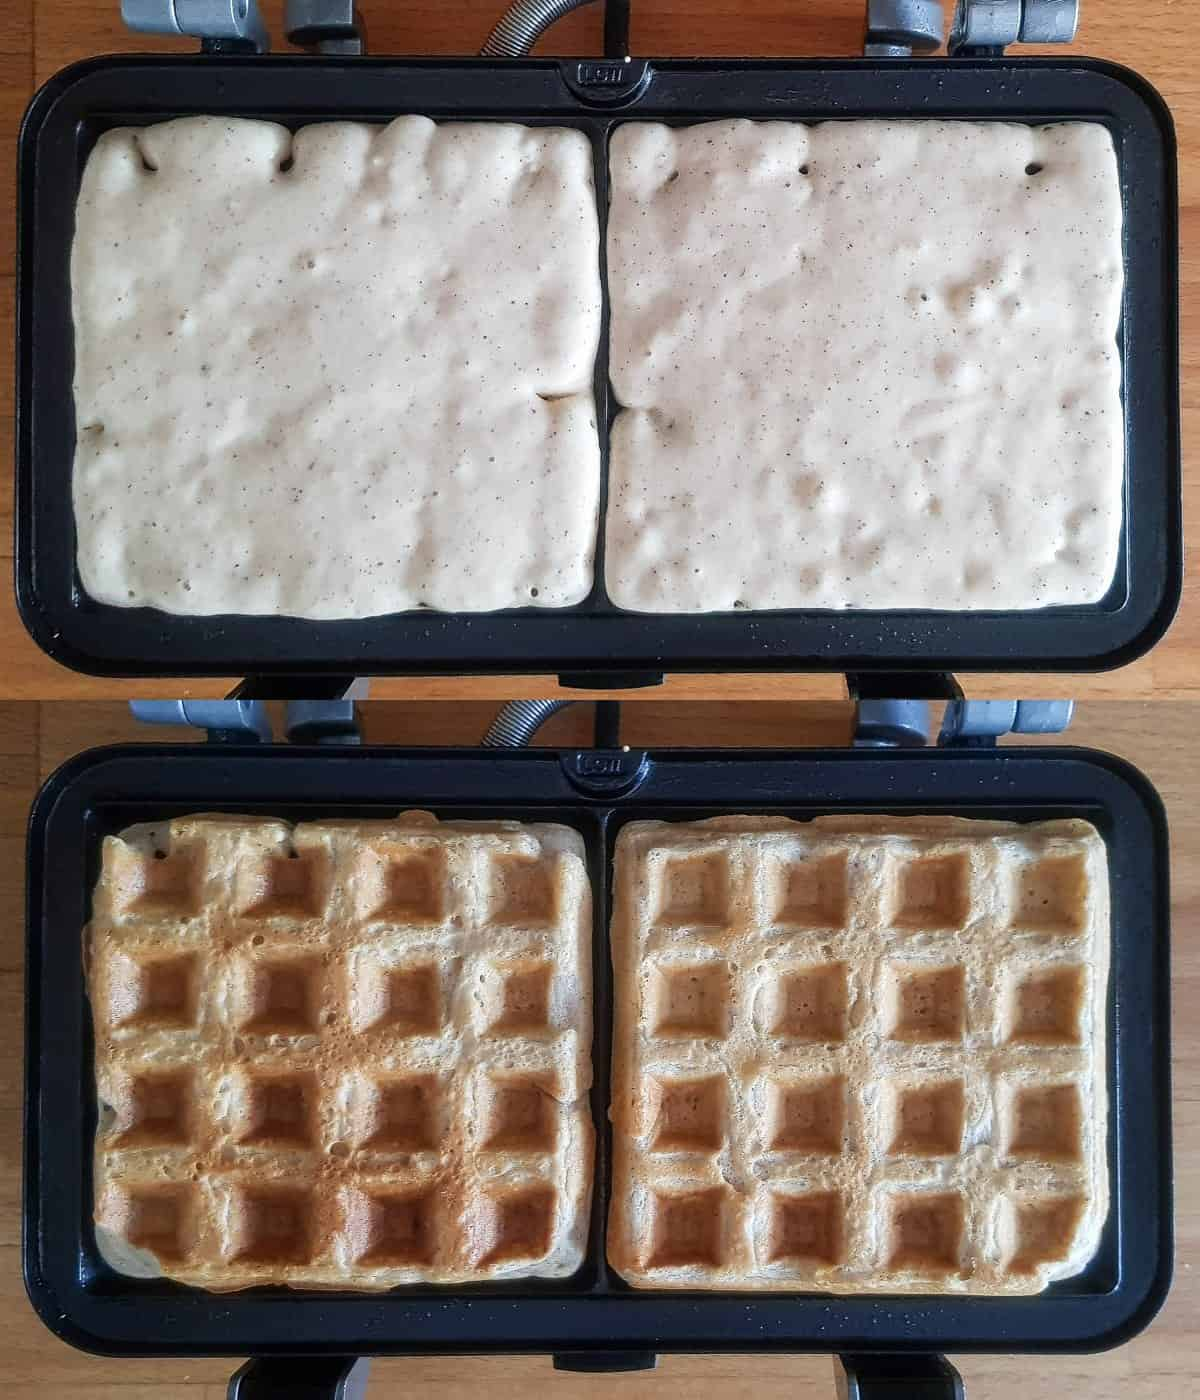 step 2 - cooking the waffles